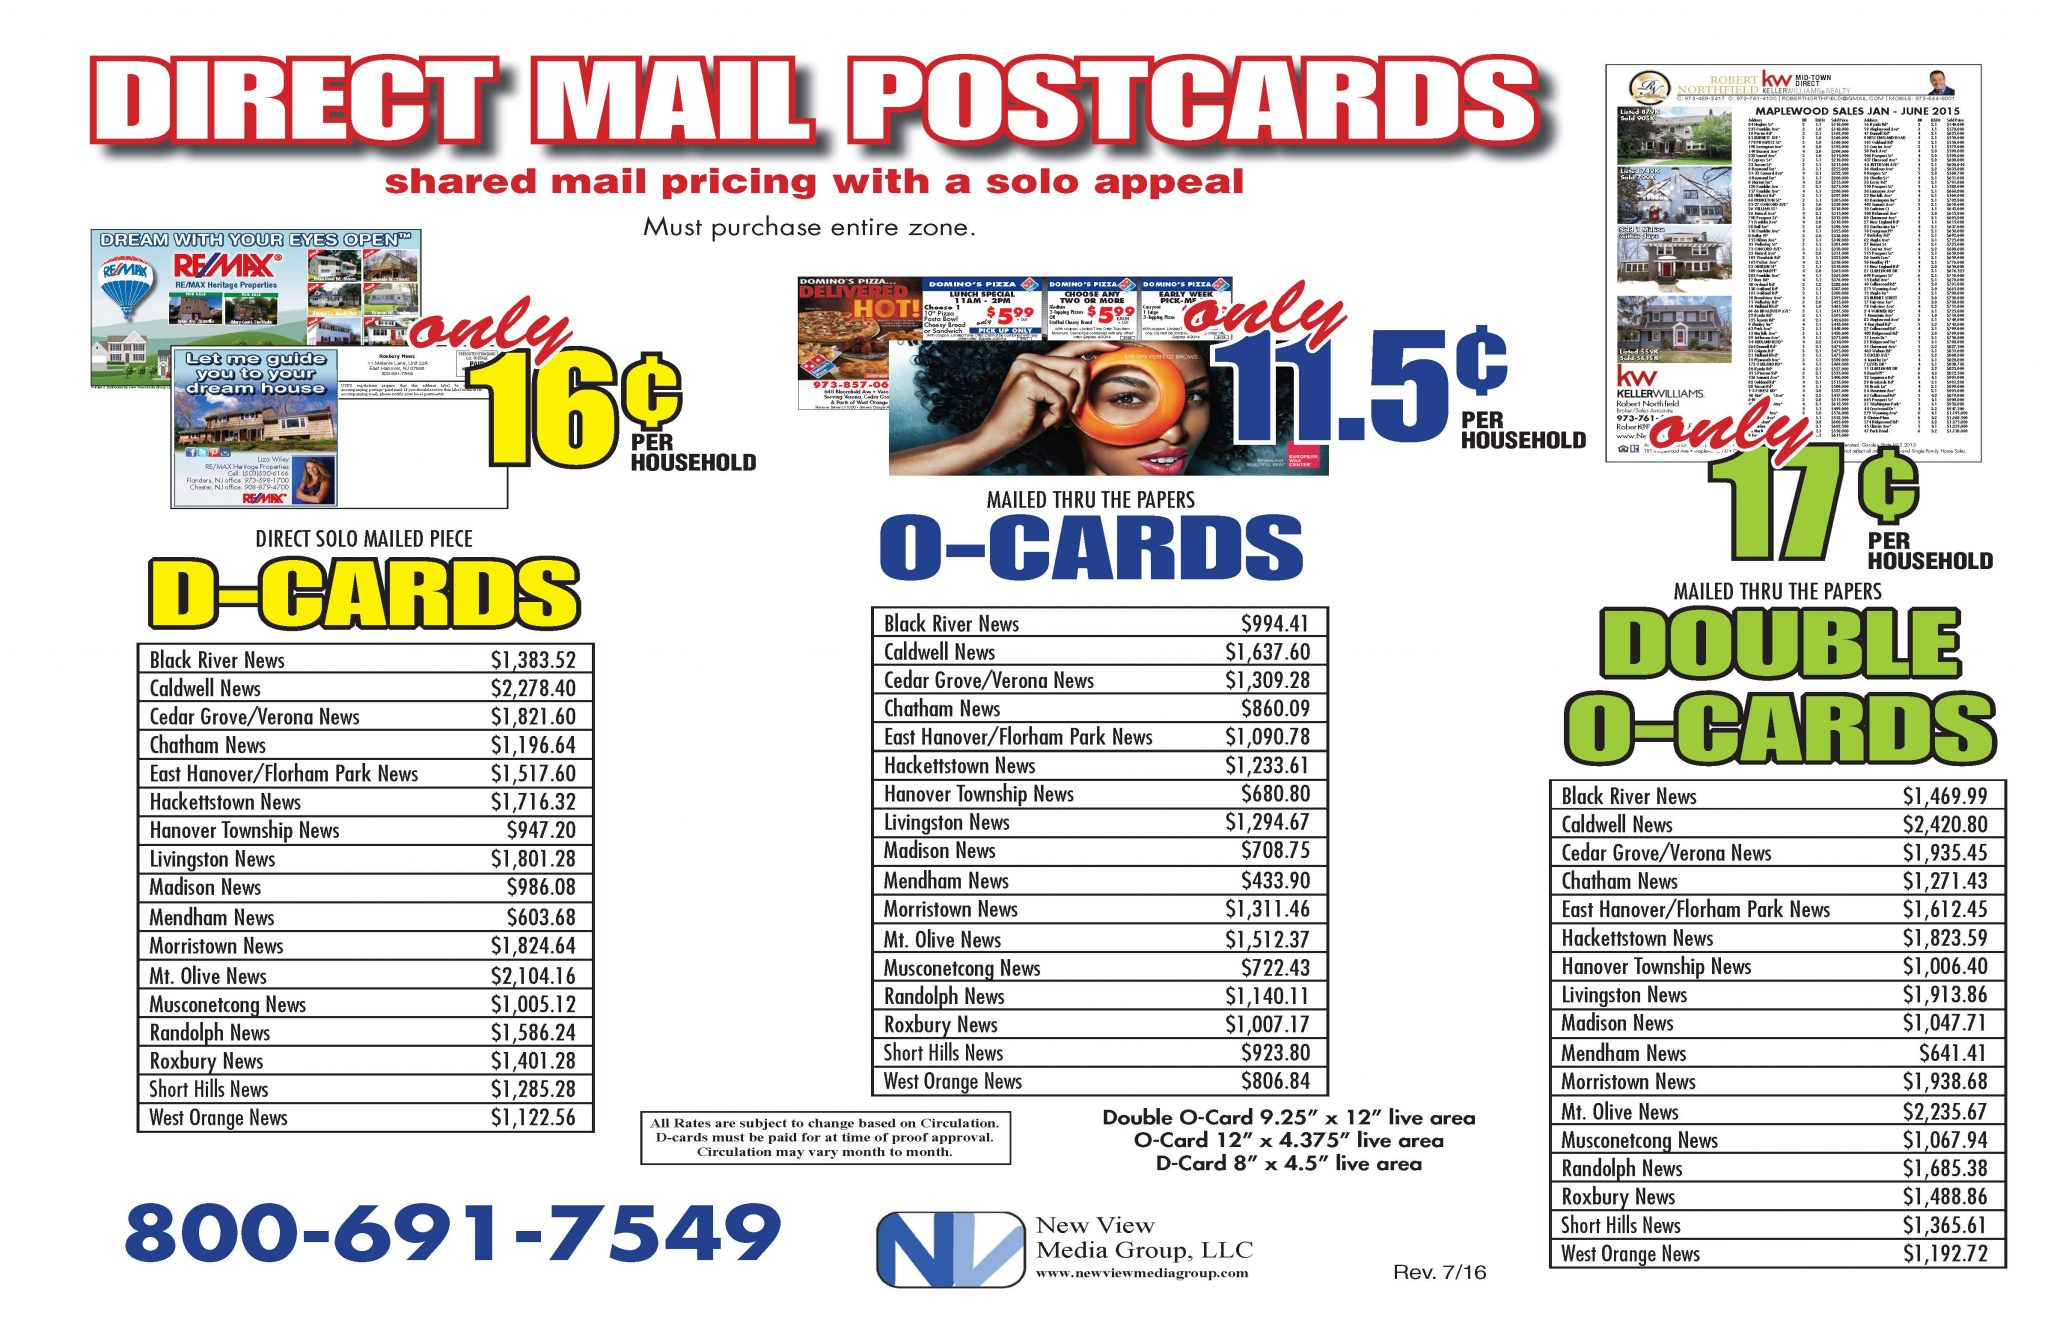 DIRECT MAIL (12)